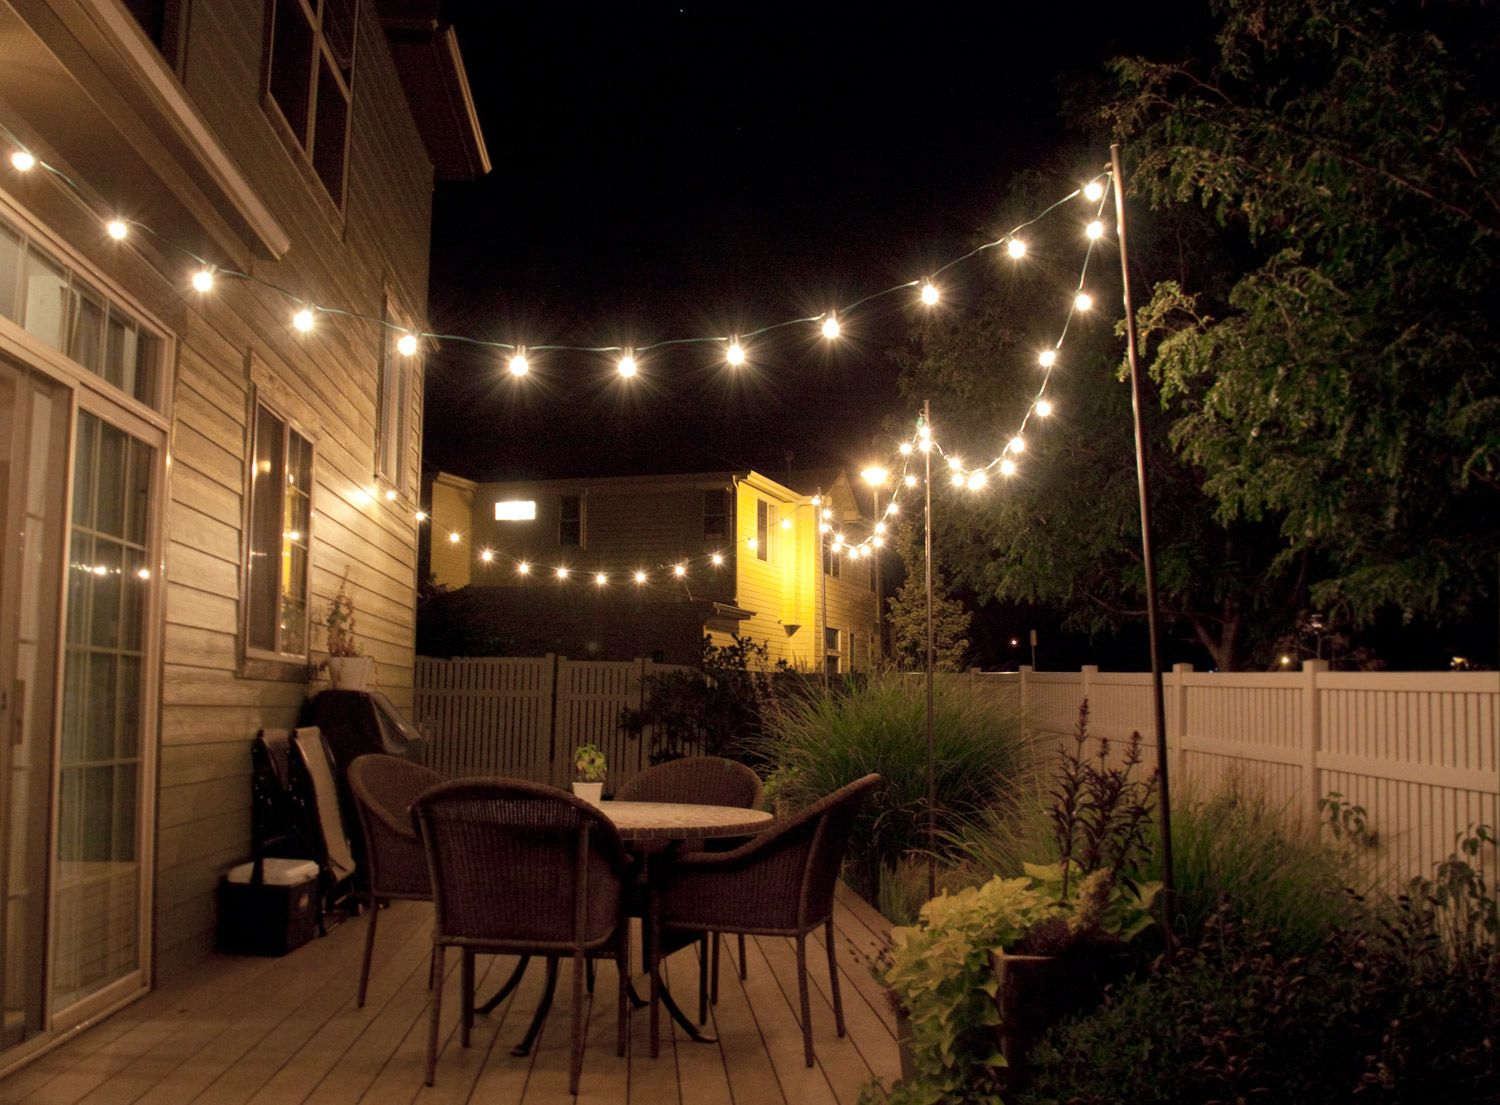 String Patio Lights Simple How To Make Inexpensive Poles To Hang String Lights On  Café Style Design Inspiration